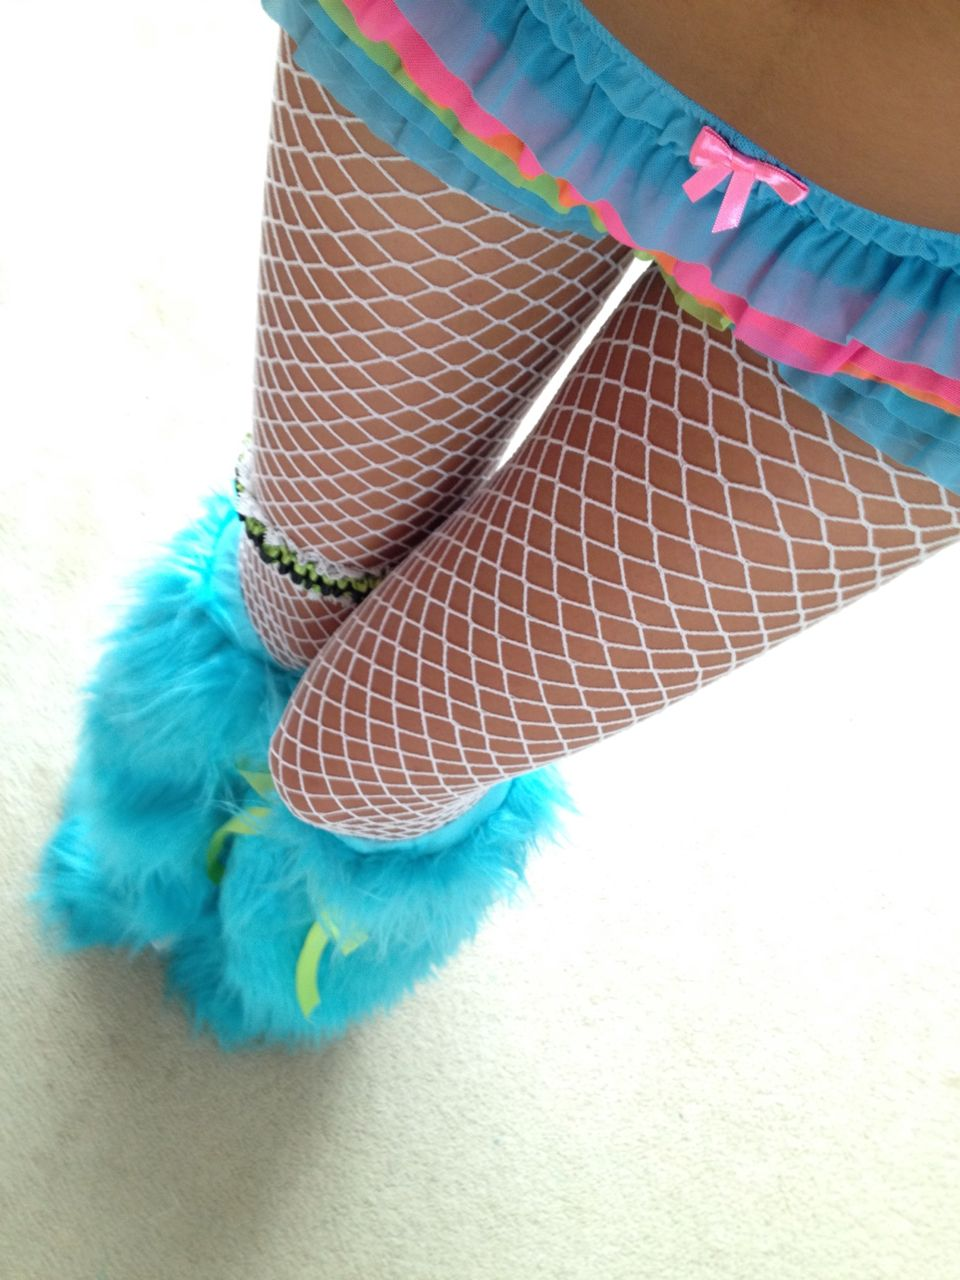 Rave outfit tumblr sissy pinterest rave outfits rave and